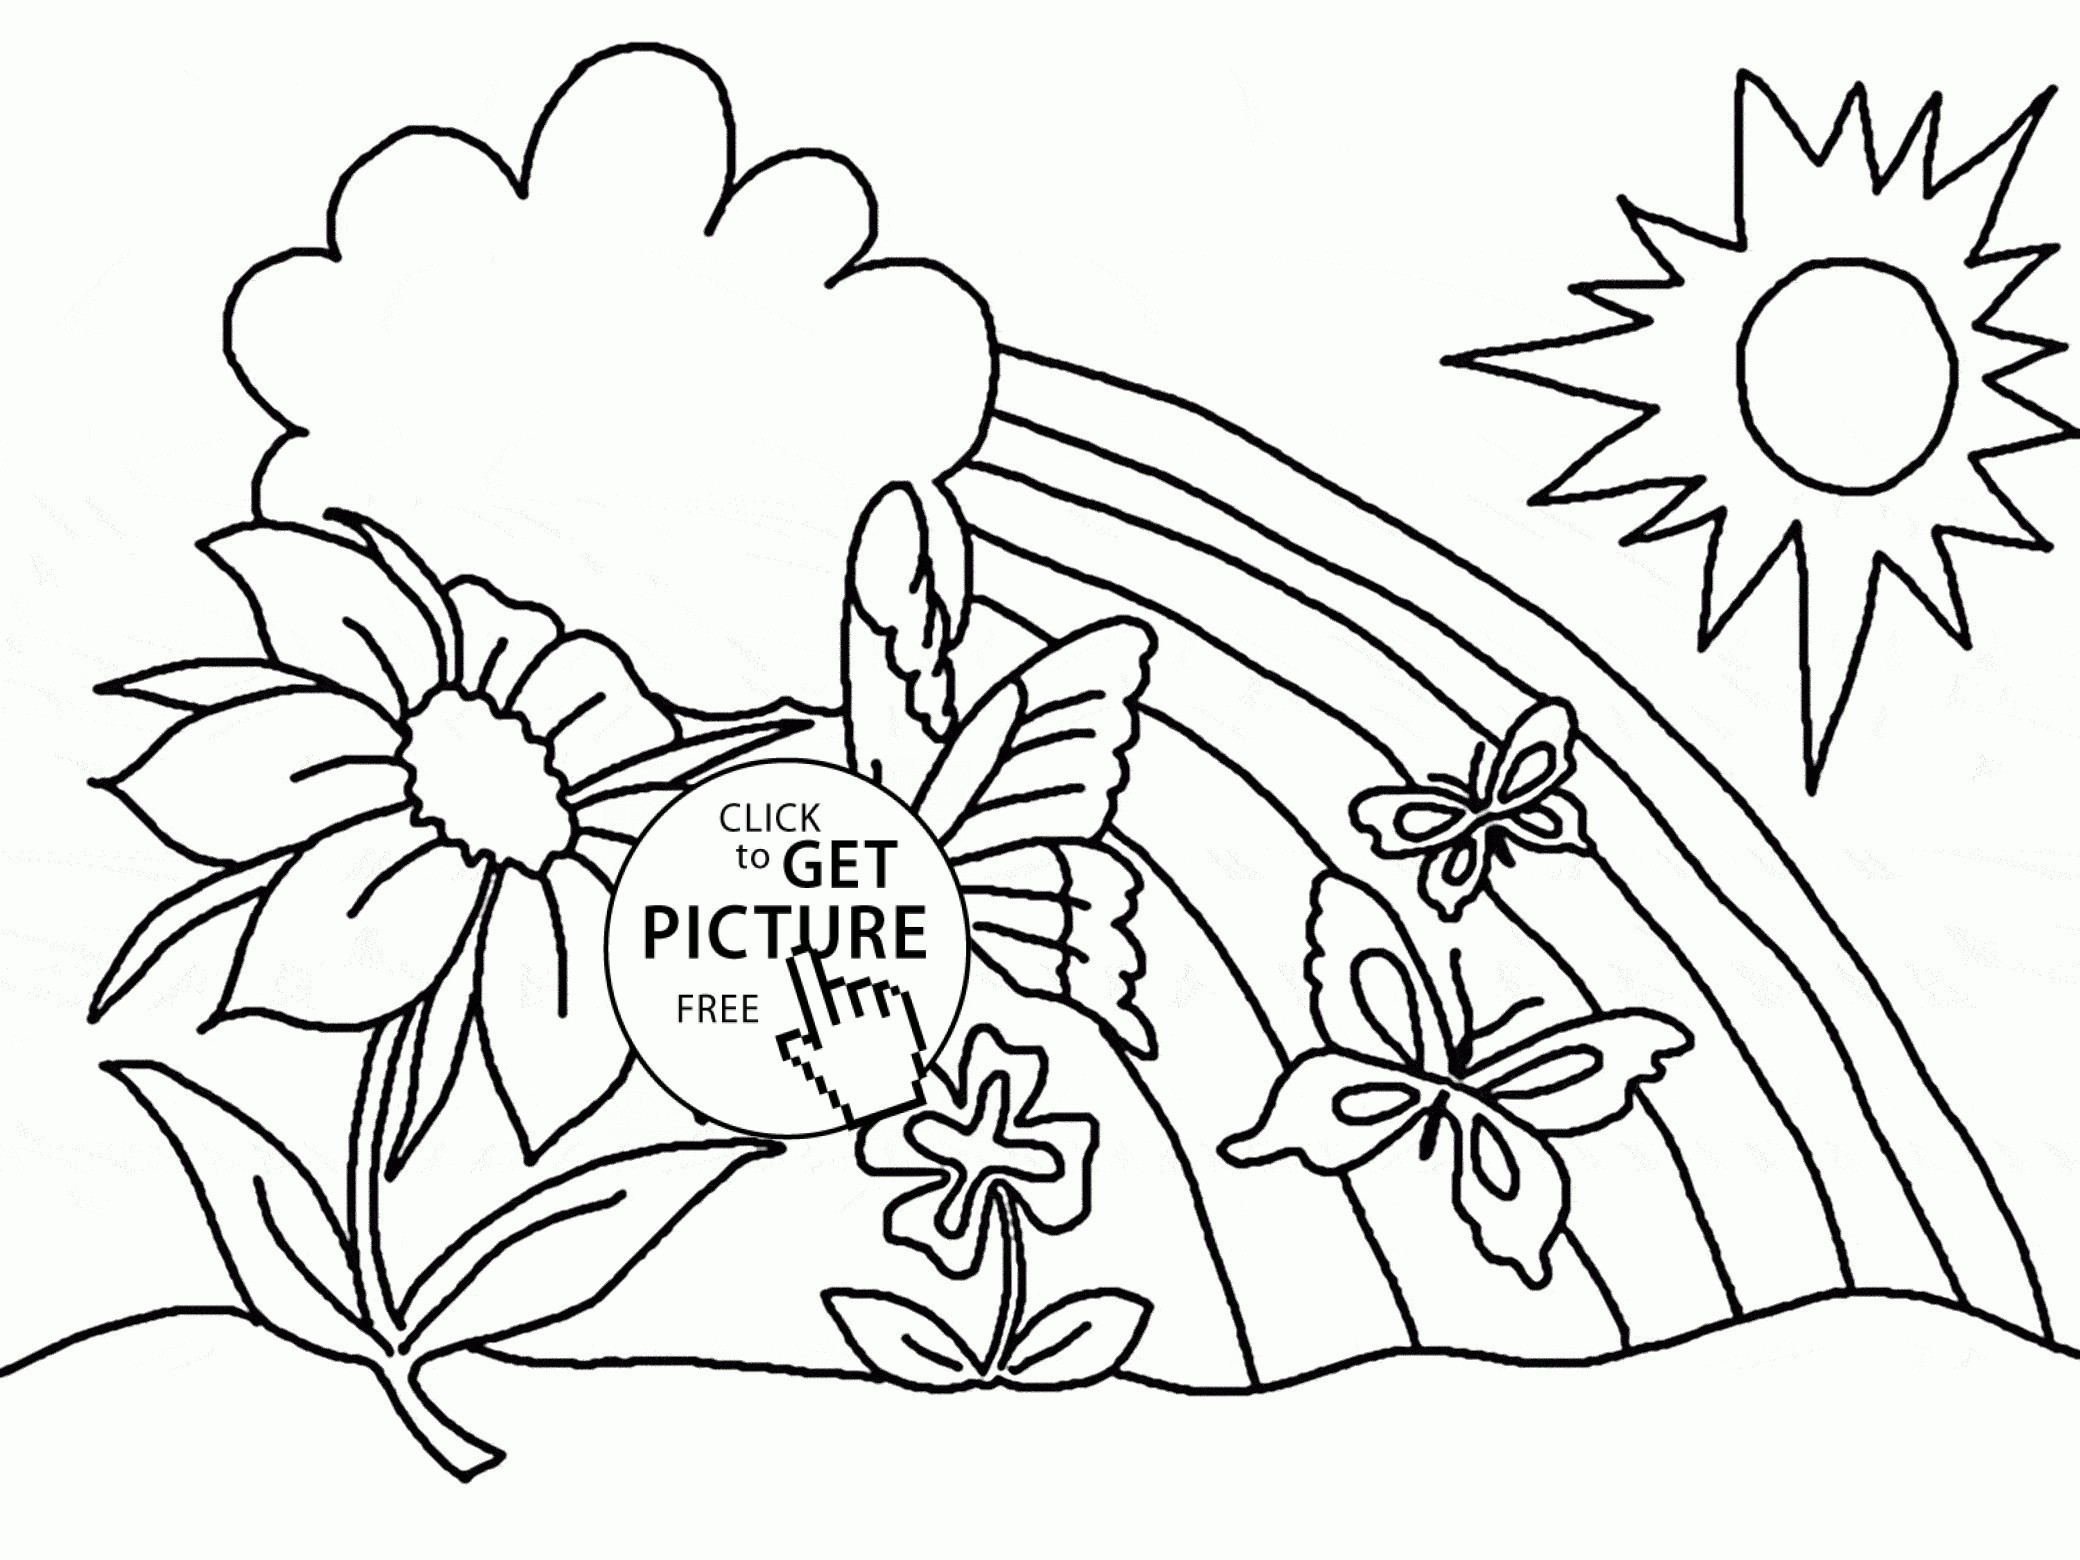 Goldfish Vase Of Coloring Pages to Print Flowers Coloring Pages Coloring Pages with Regard to Vases Flower Coloring Pages to Print Flowers Spring Coloring Pages Spring Coloring Pages Best Printable Cds 0d